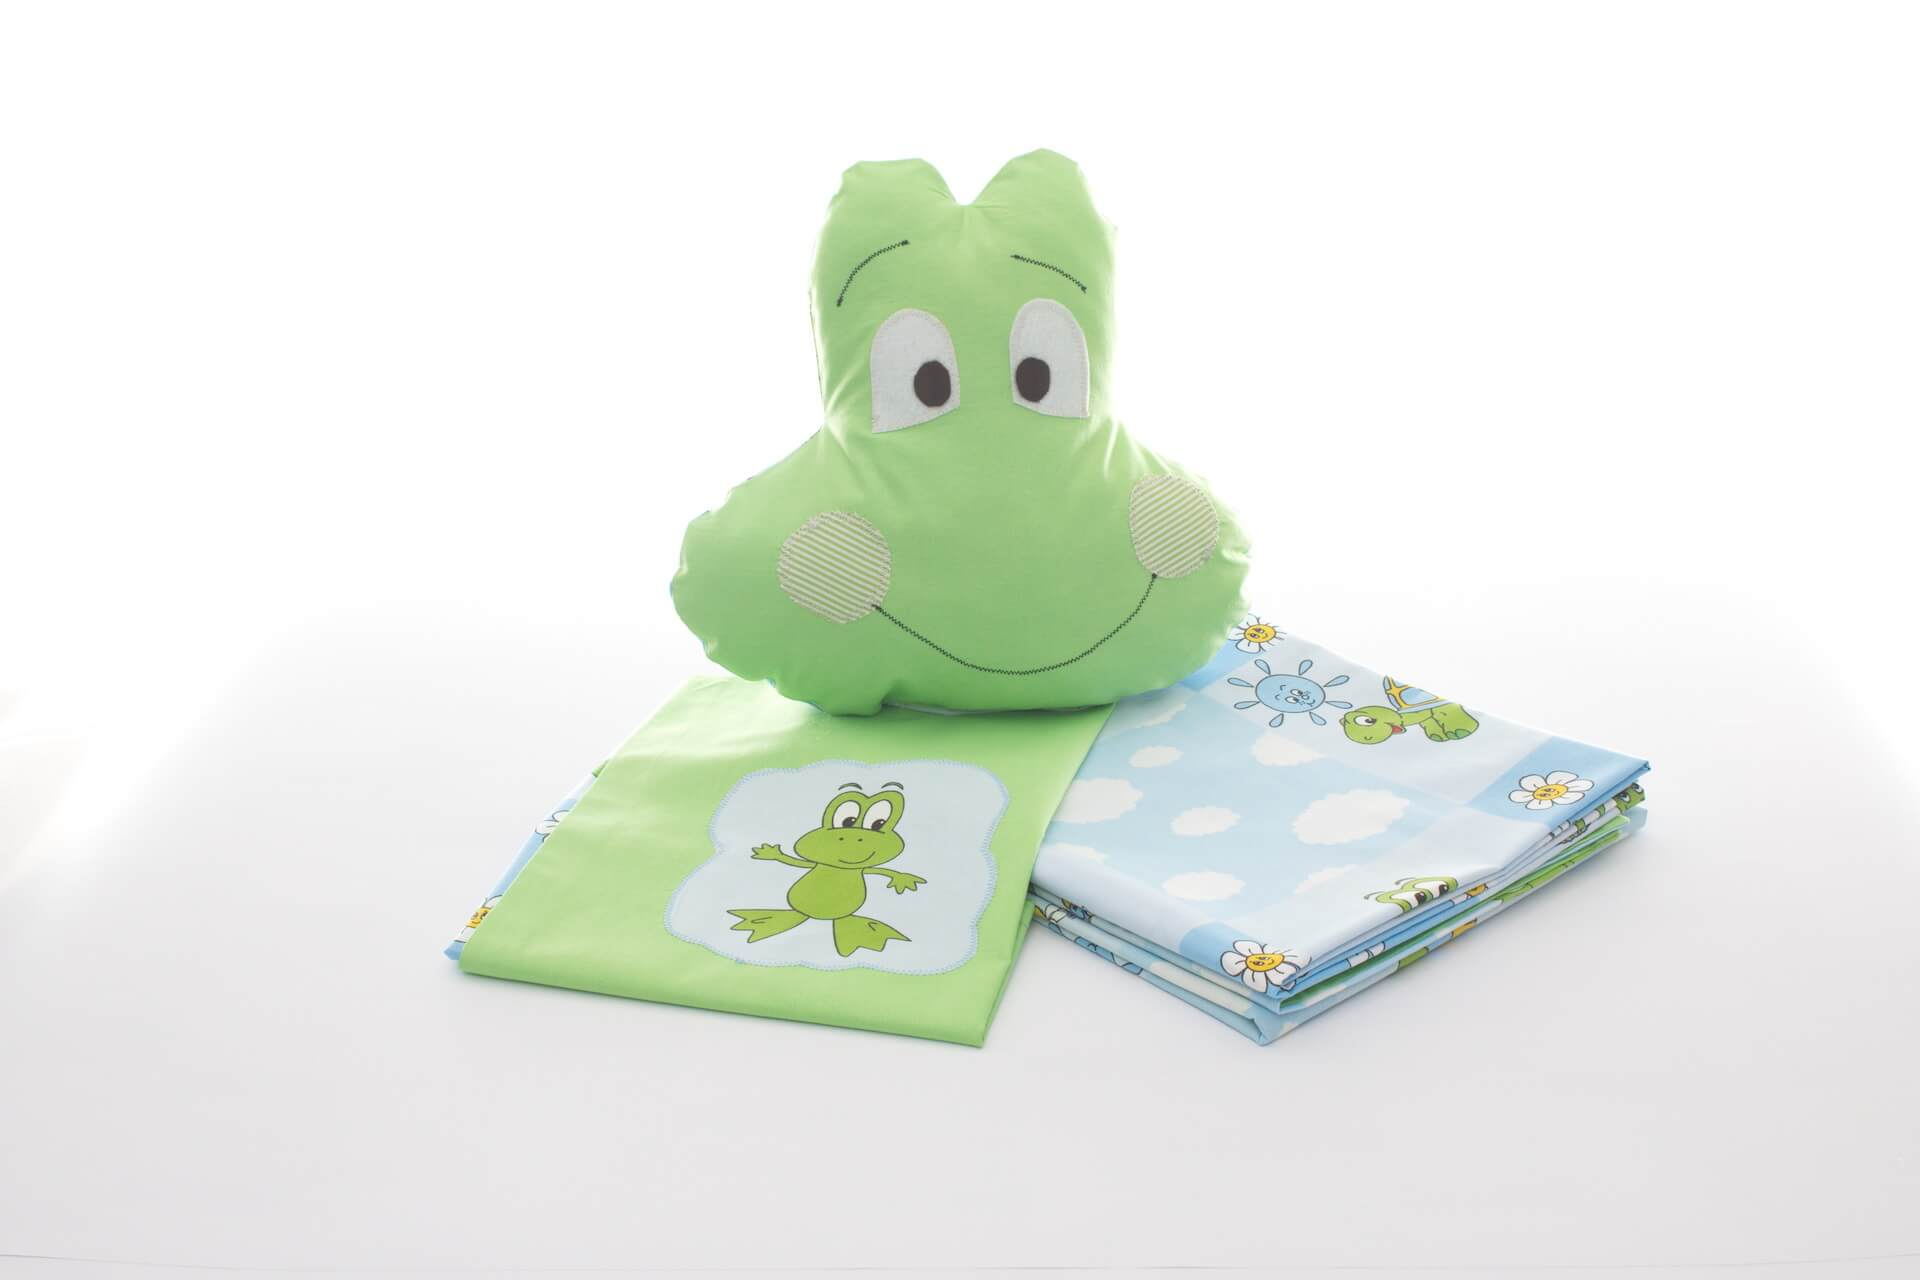 Green cotton bed linen with frogs and frog decorative pillow